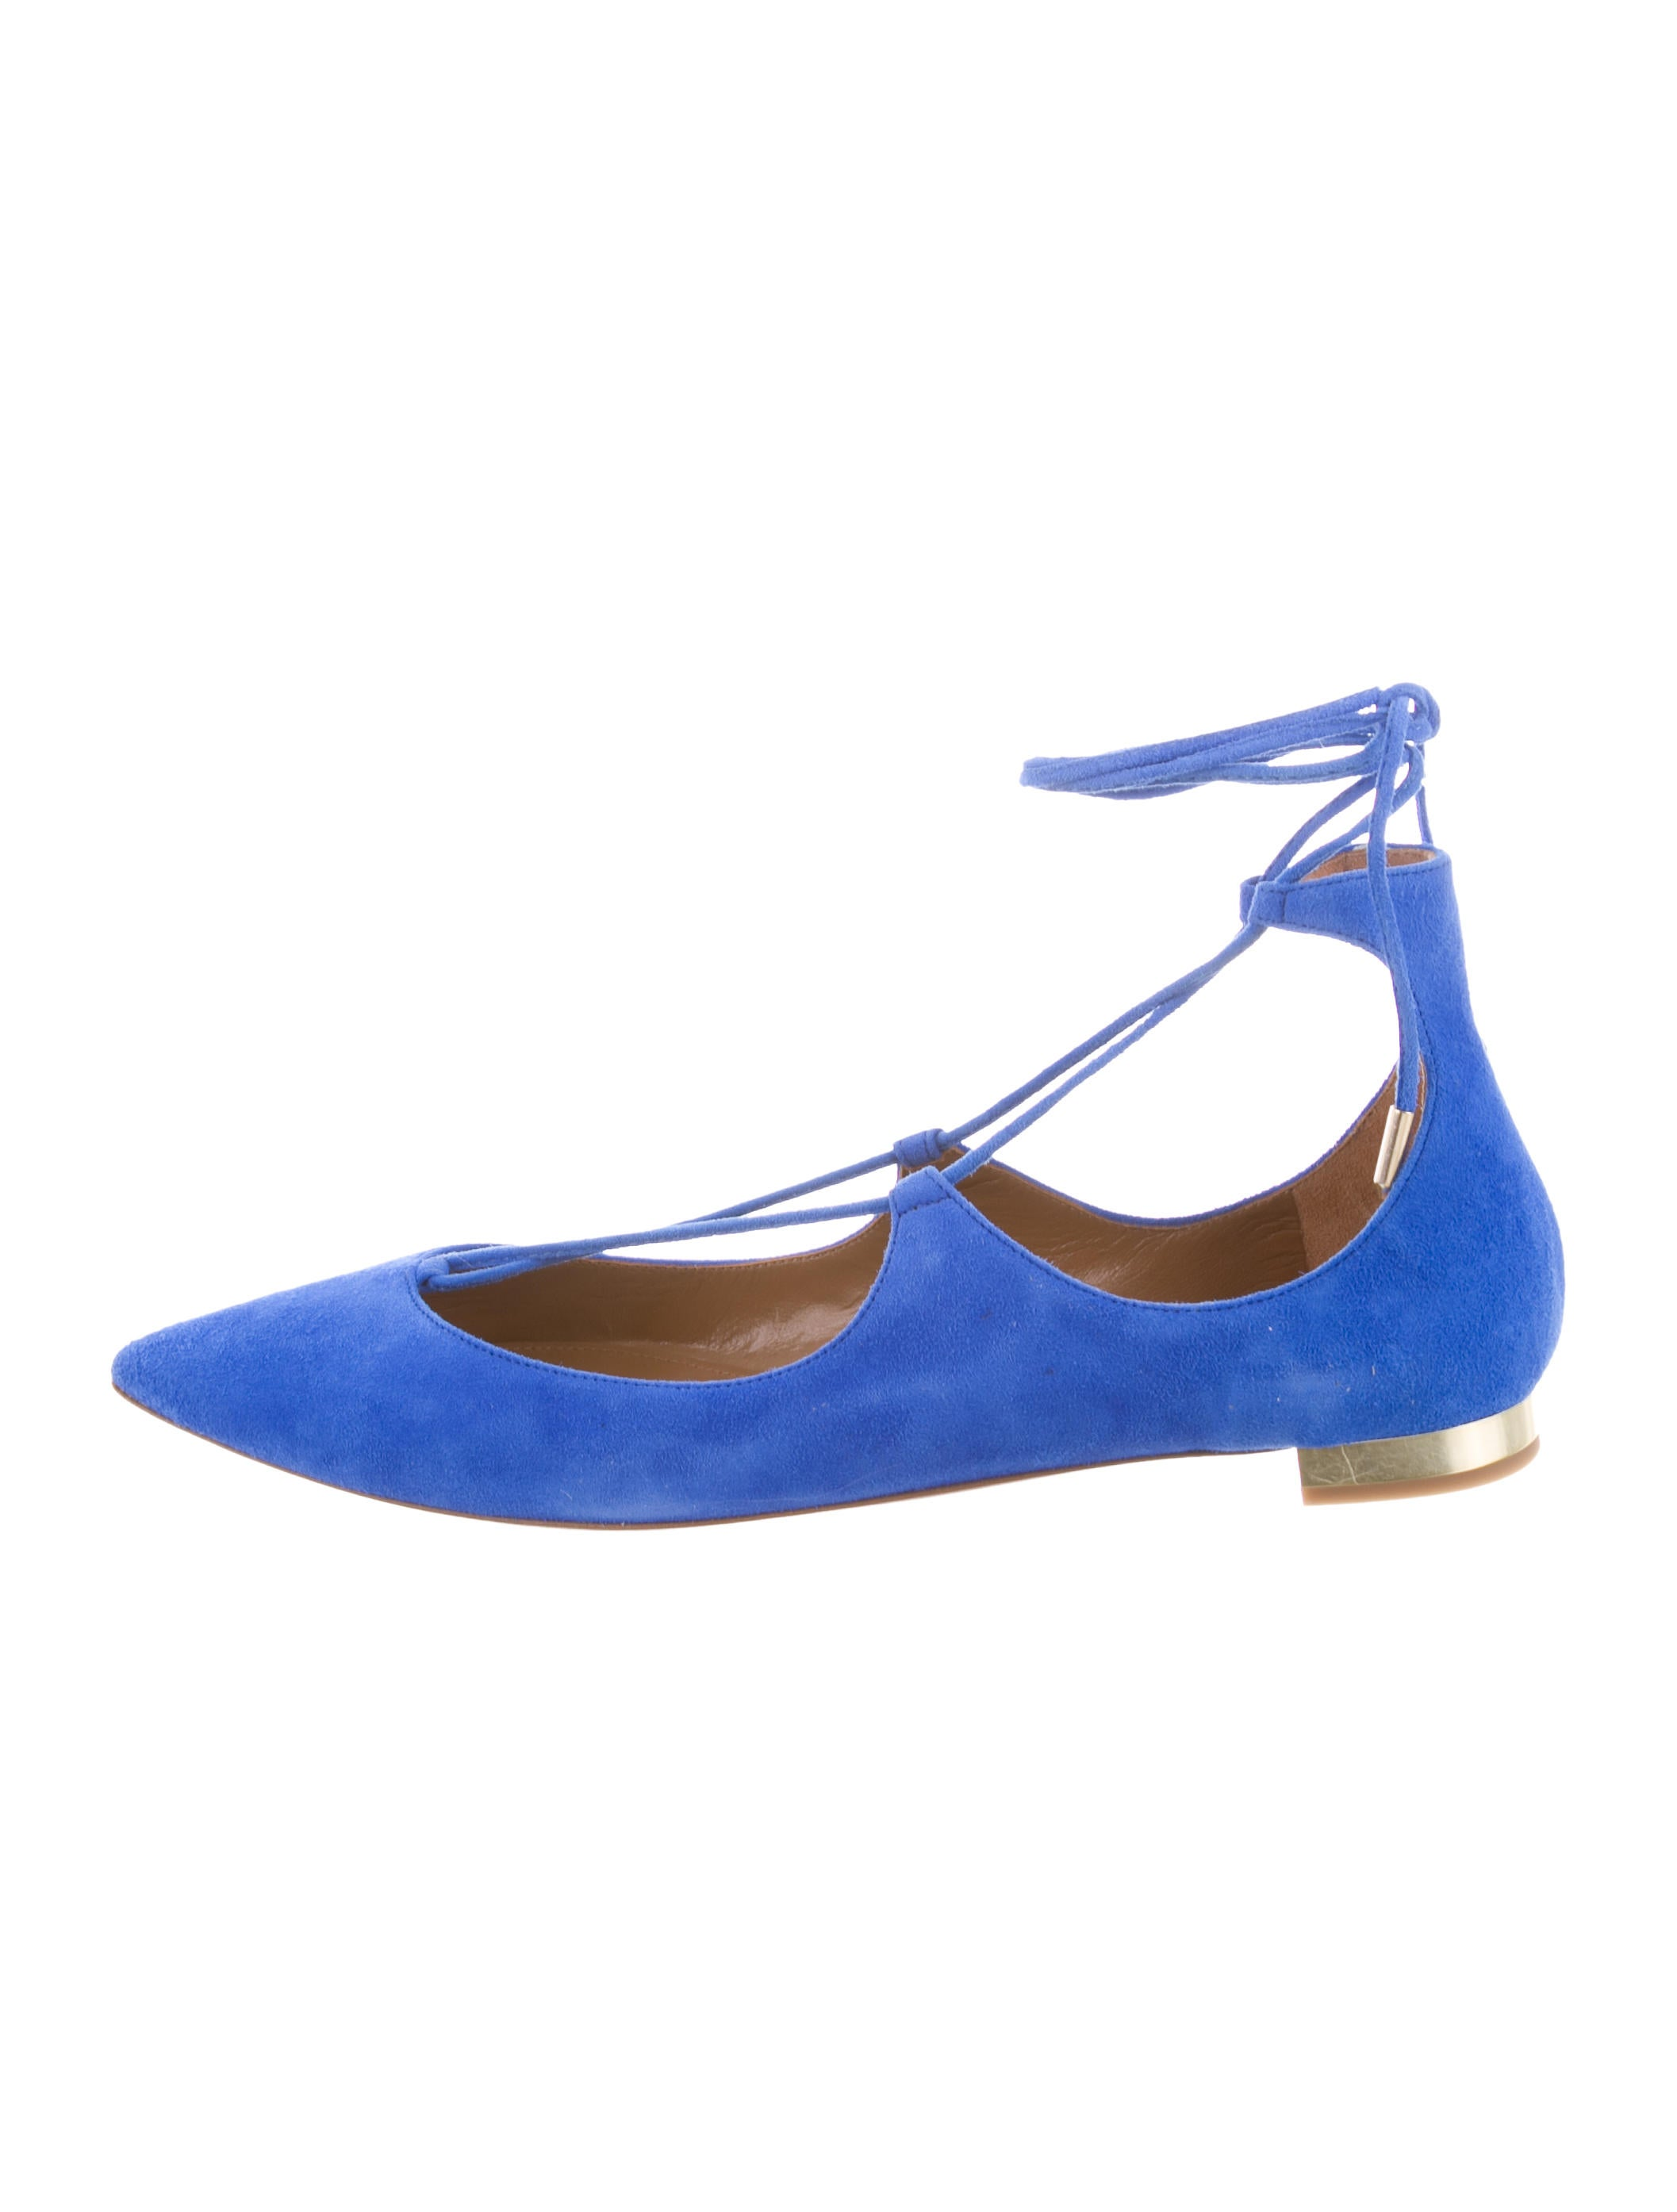 sale purchase free shipping excellent Aquatalia Christy Lace-Up Flats w/ Tags A95TGU